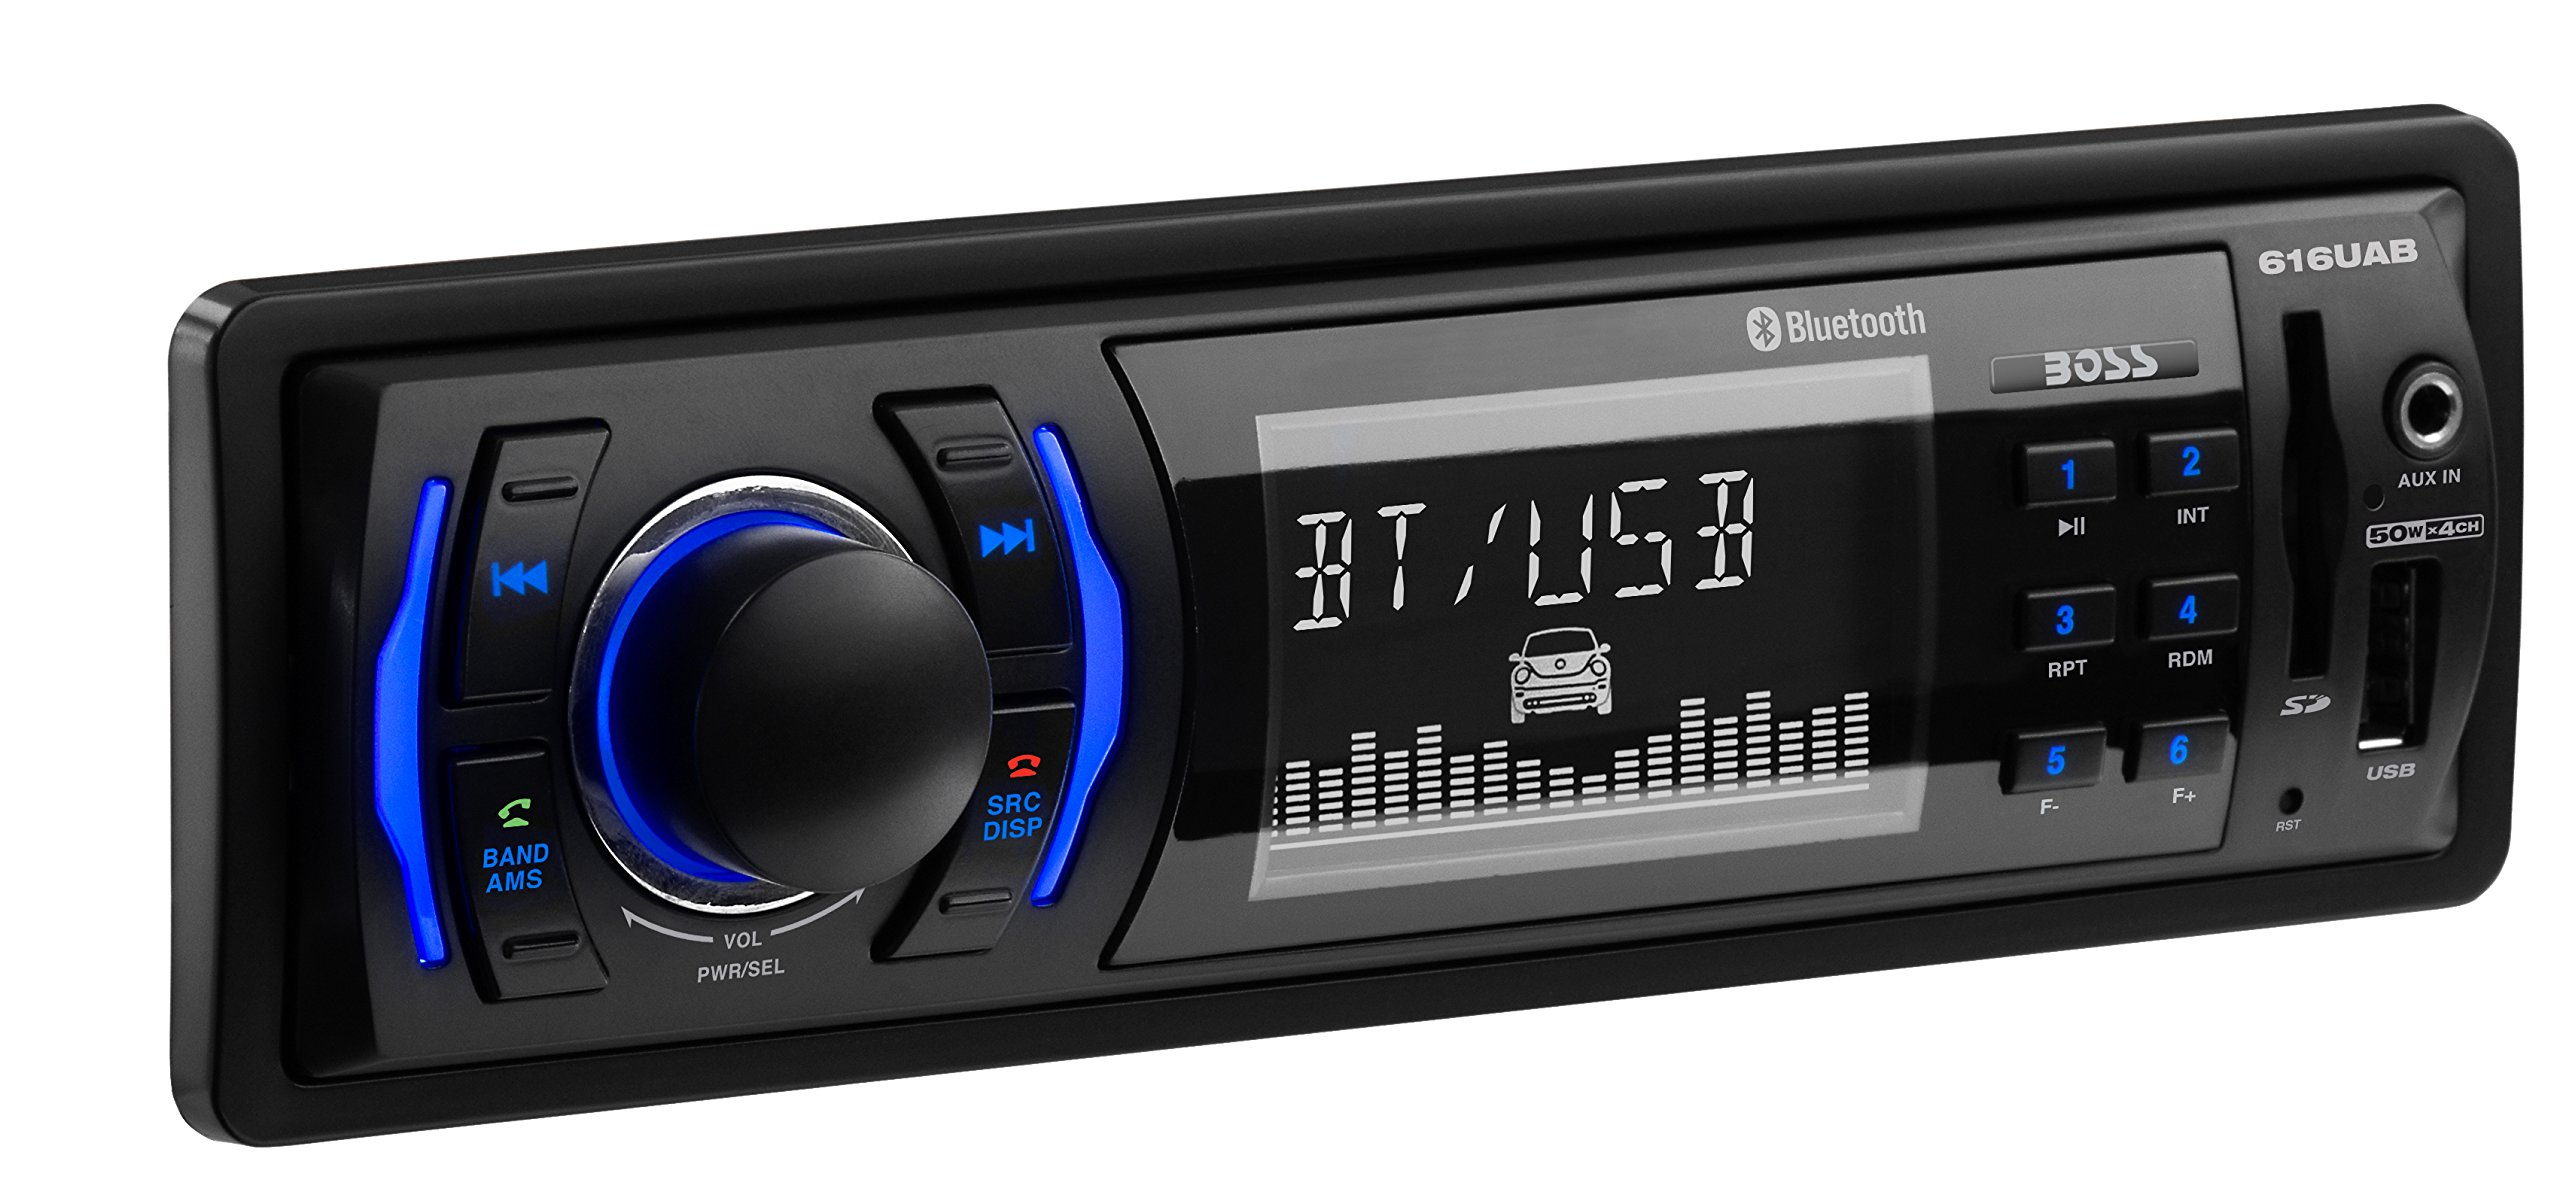 bose car stereo radio player system audio auto mp3 player. Black Bedroom Furniture Sets. Home Design Ideas